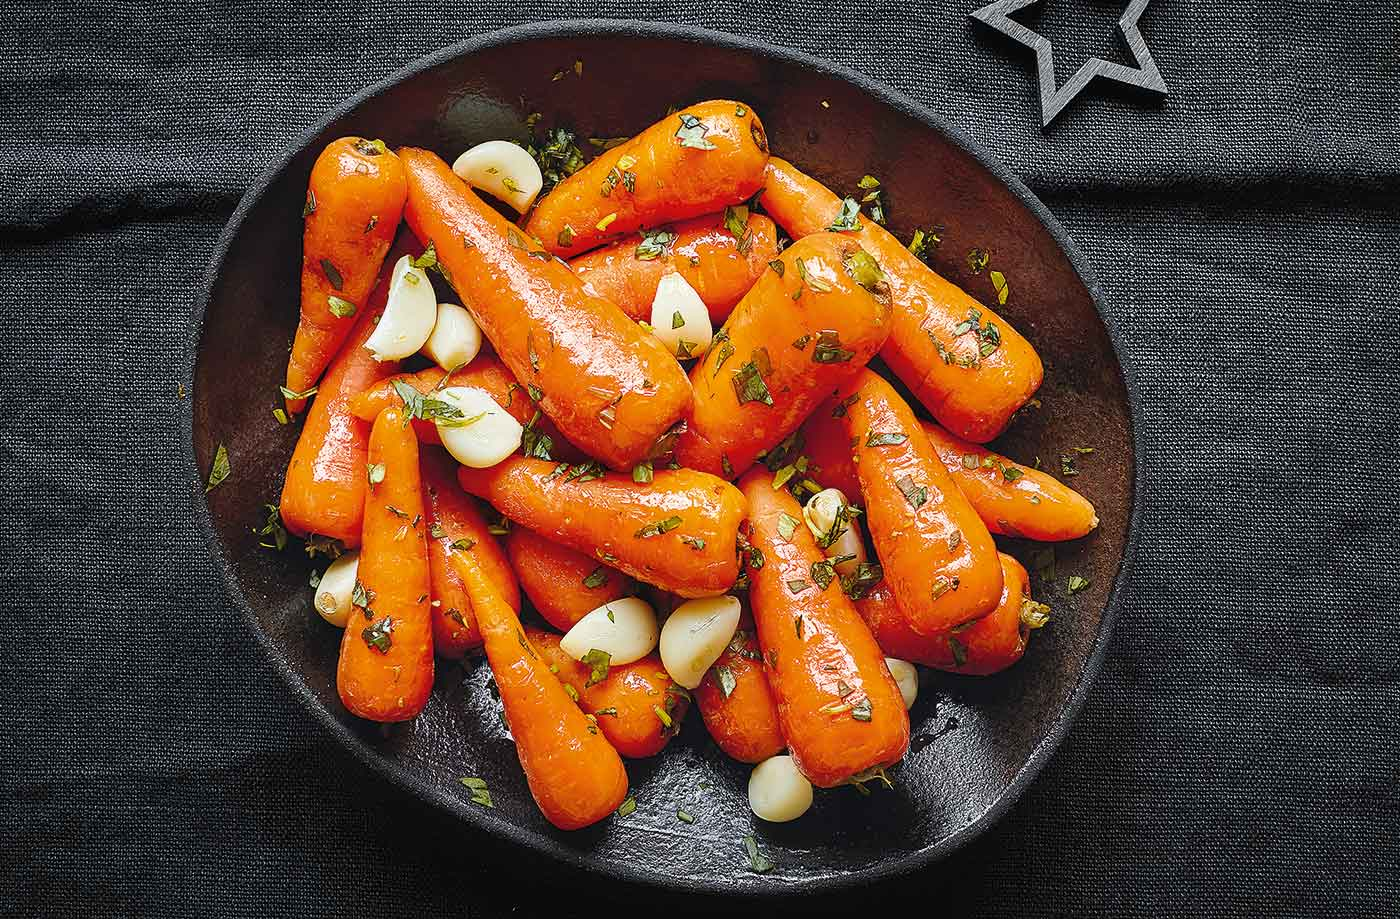 Whisky-glazed carrots with garlic and tarragon recipe